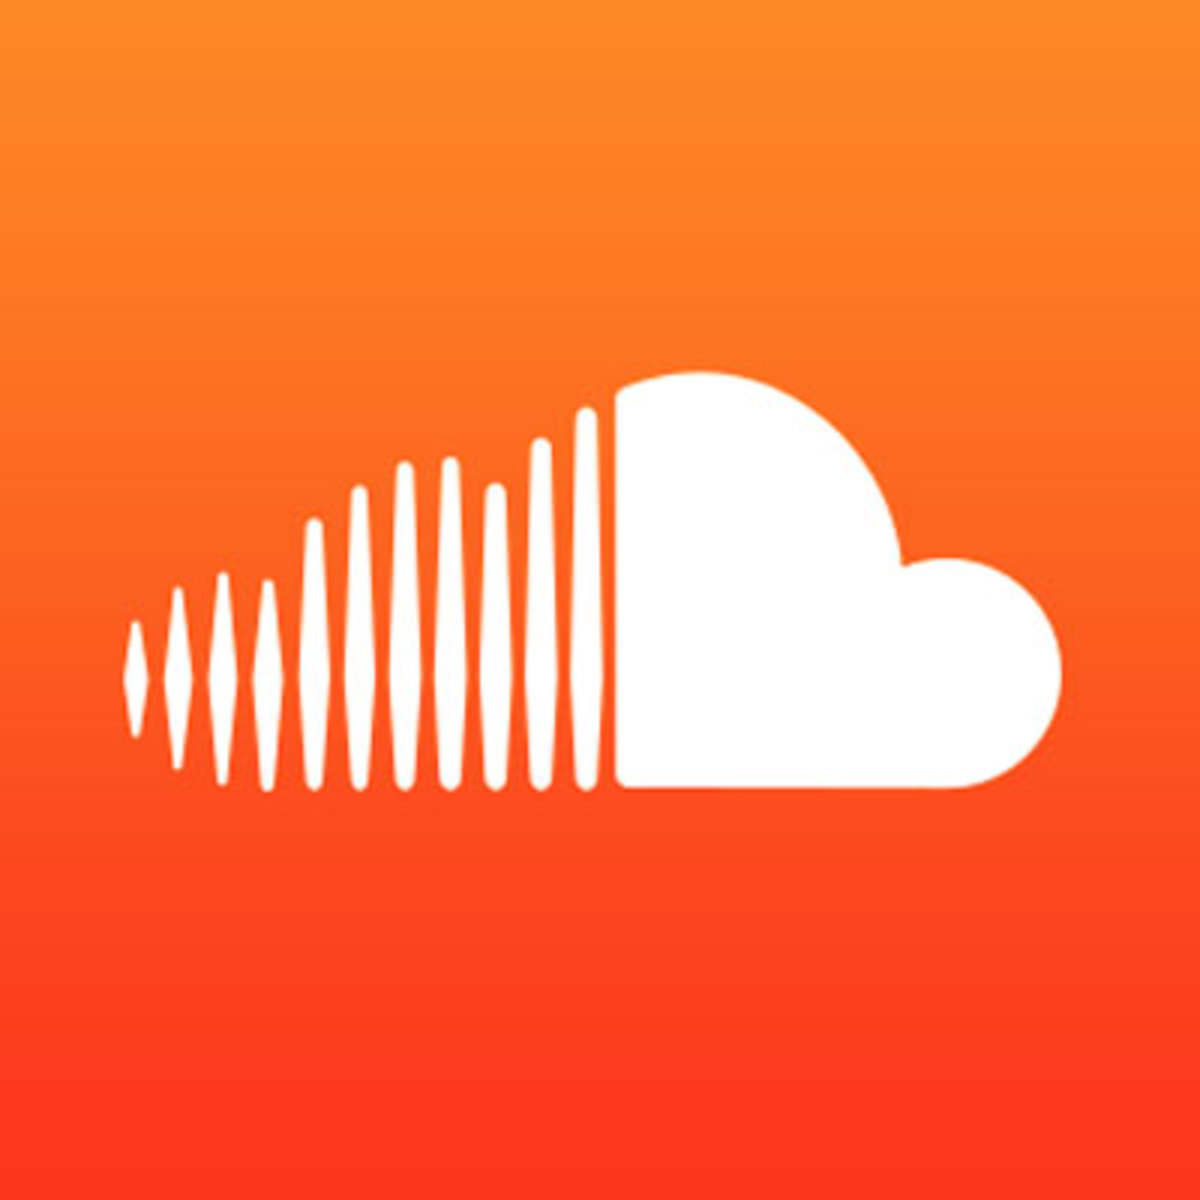 soundcloud-agreement.jpg